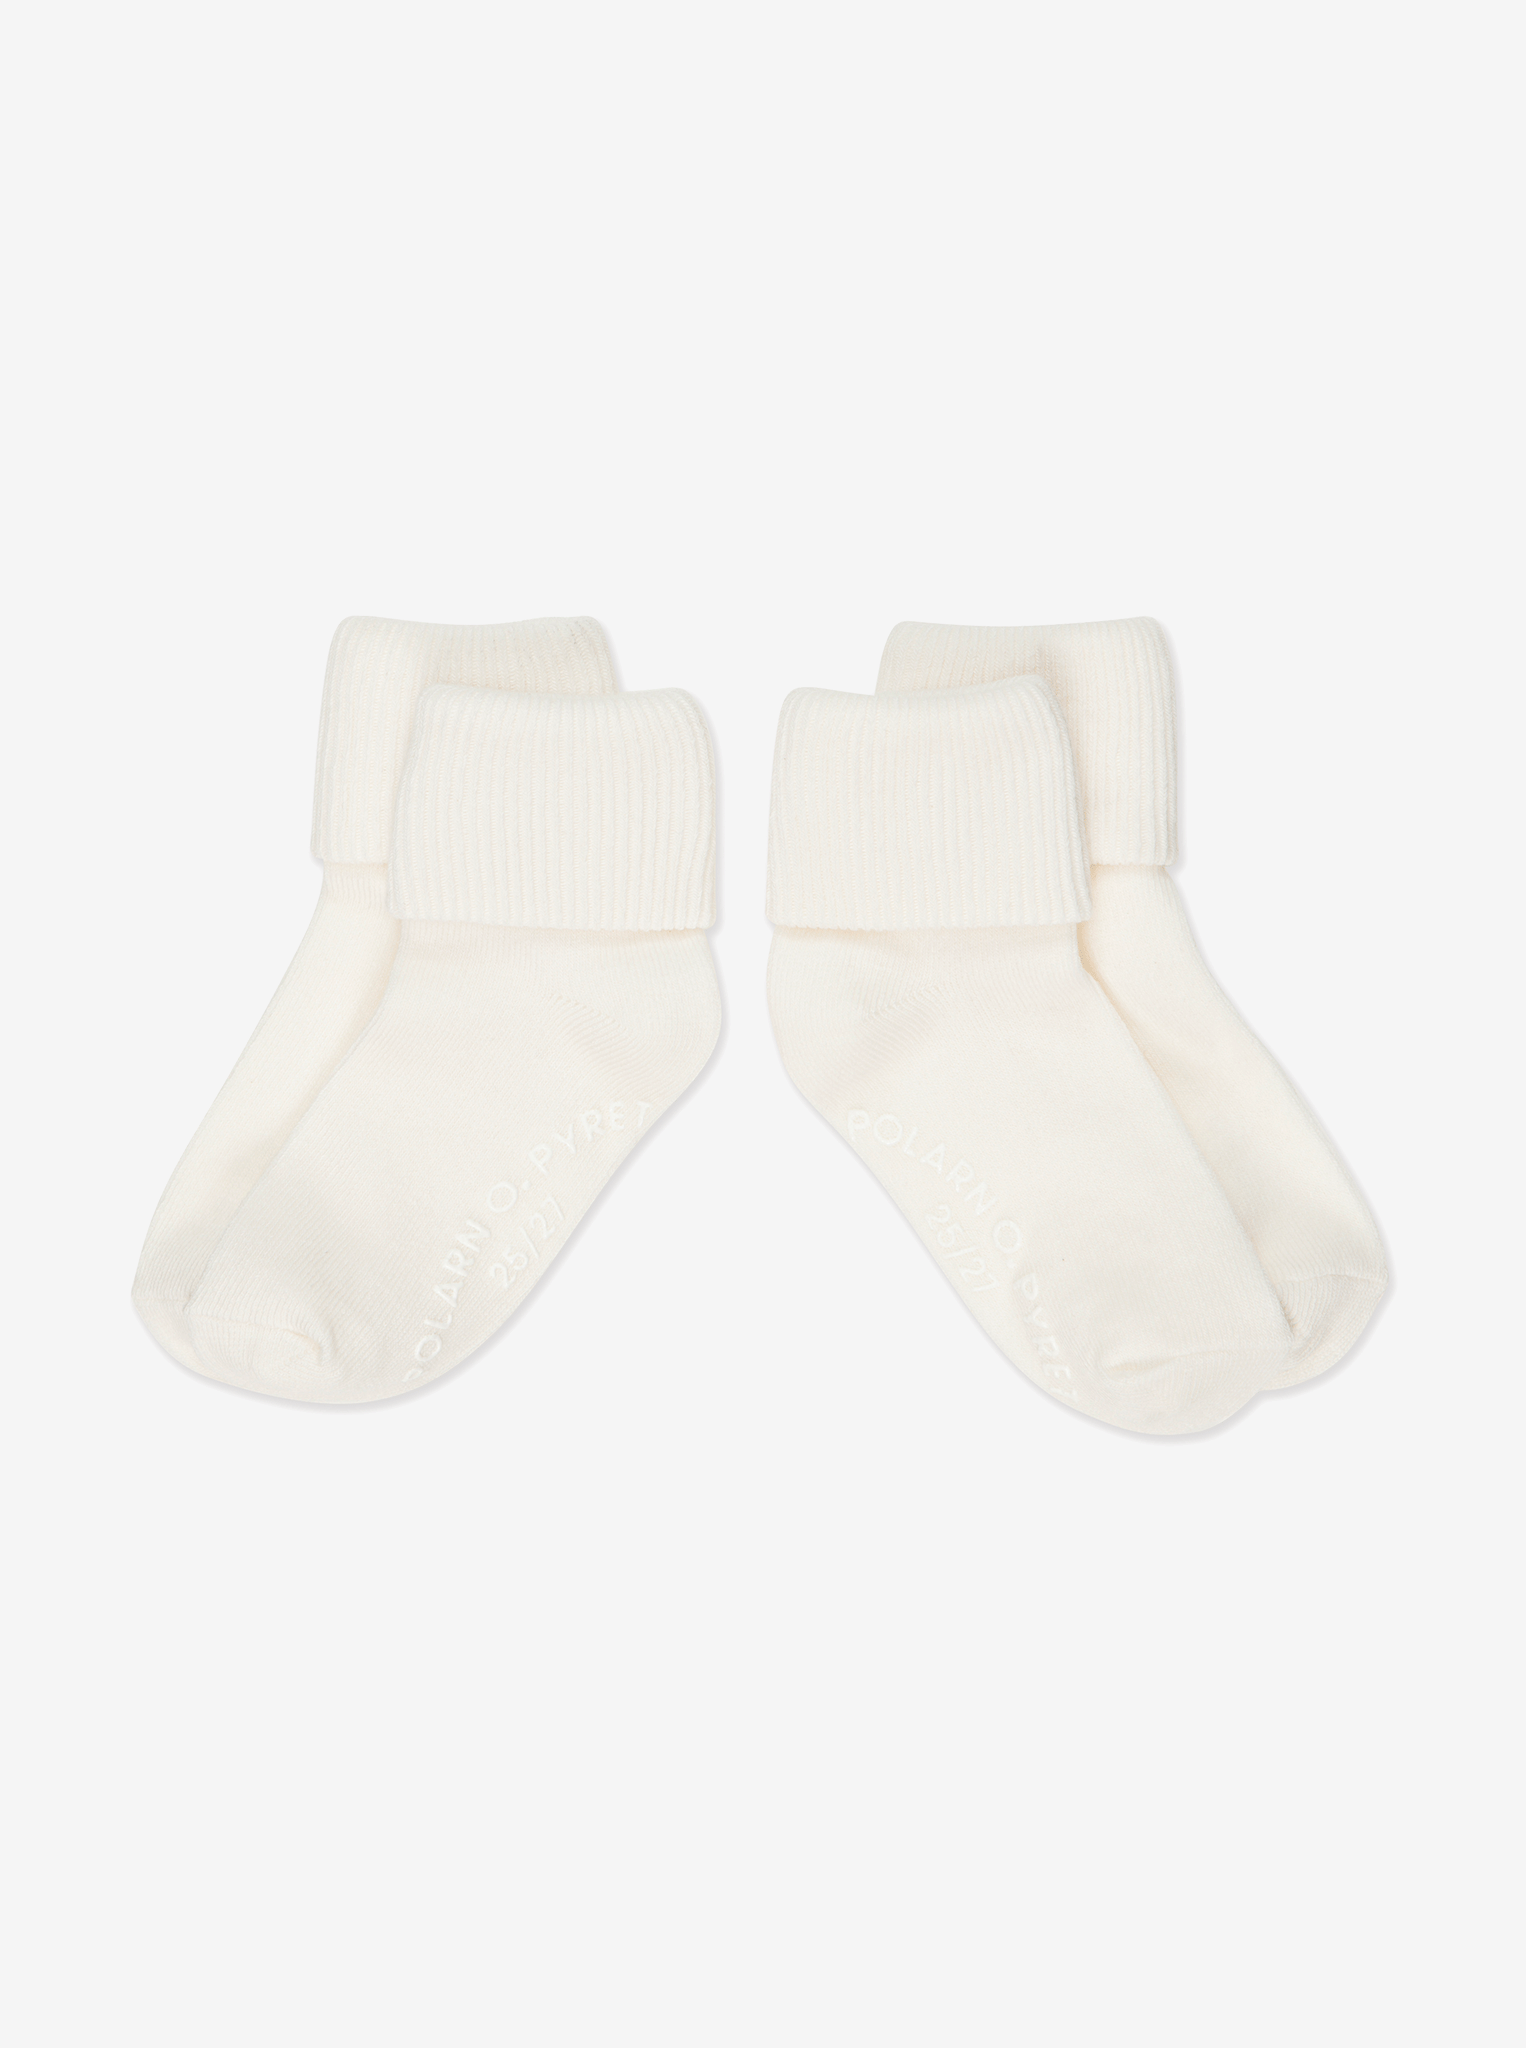 2 Pack Kids Antislip Socks White Unisex 4m-6y